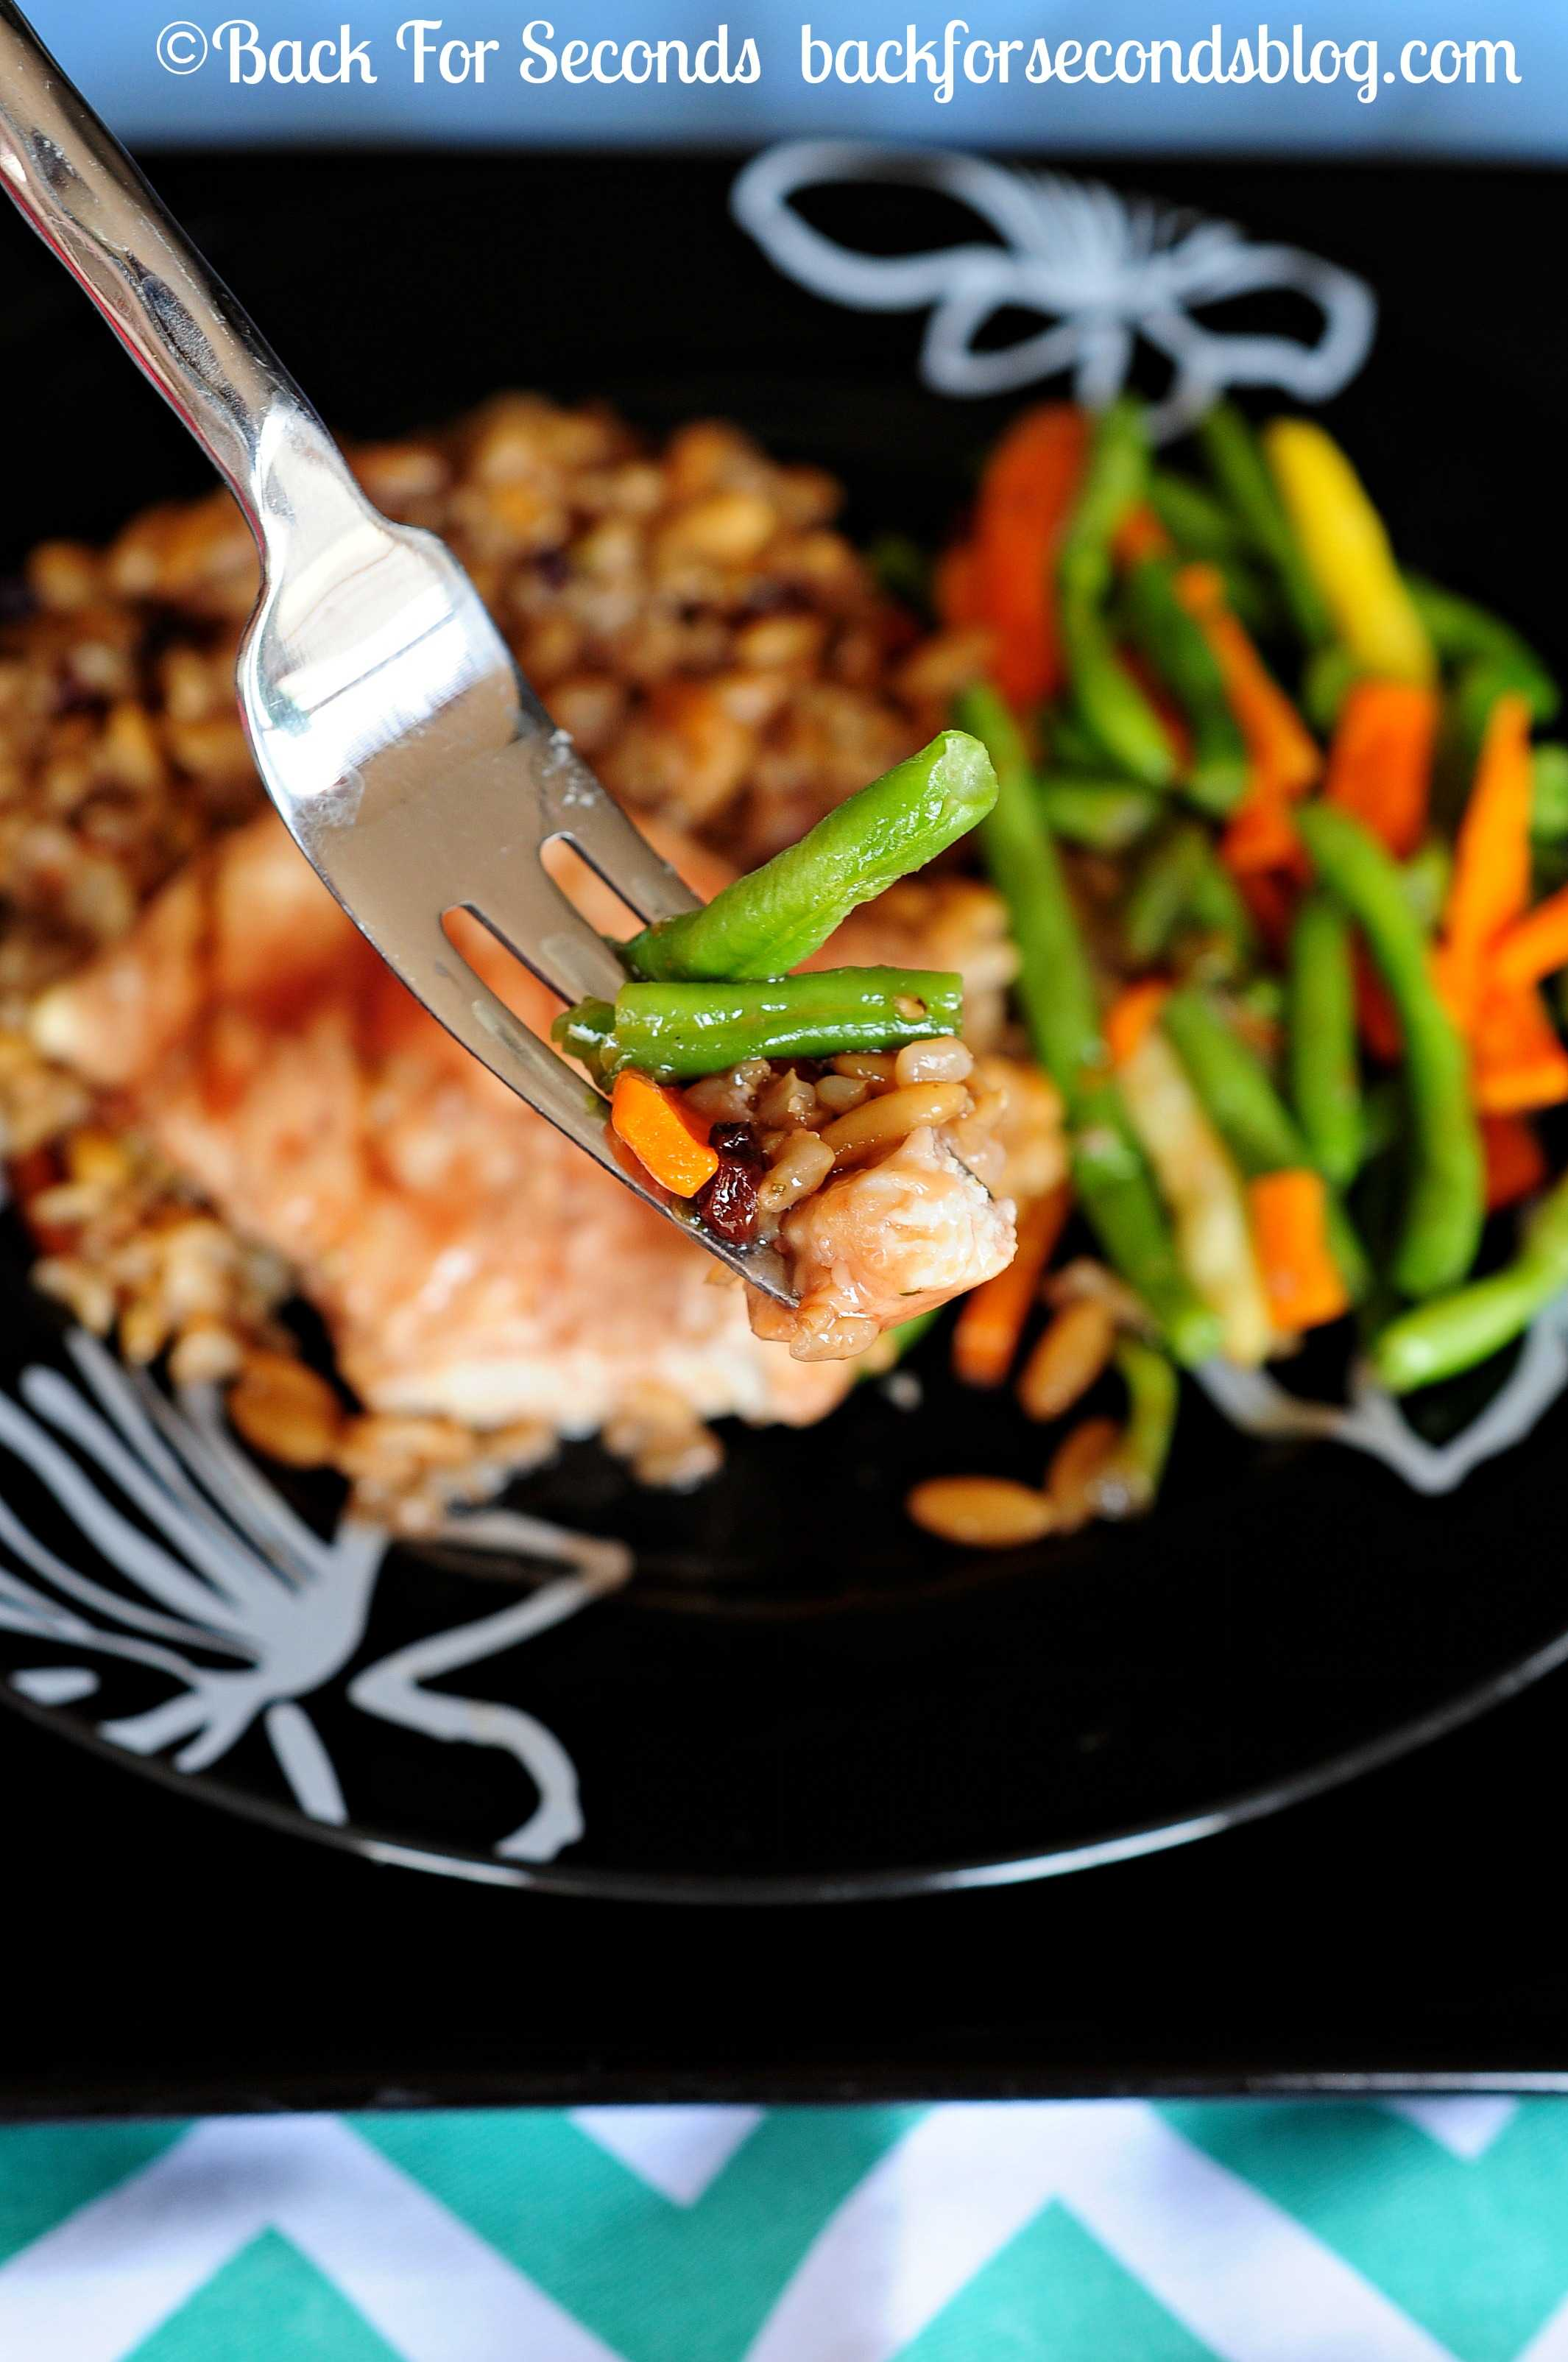 Healthy Pomegranate Chicken - great for busy nights! http://backforsecondsblog.com  #EatHonestly #pomegranate #chicken #shop